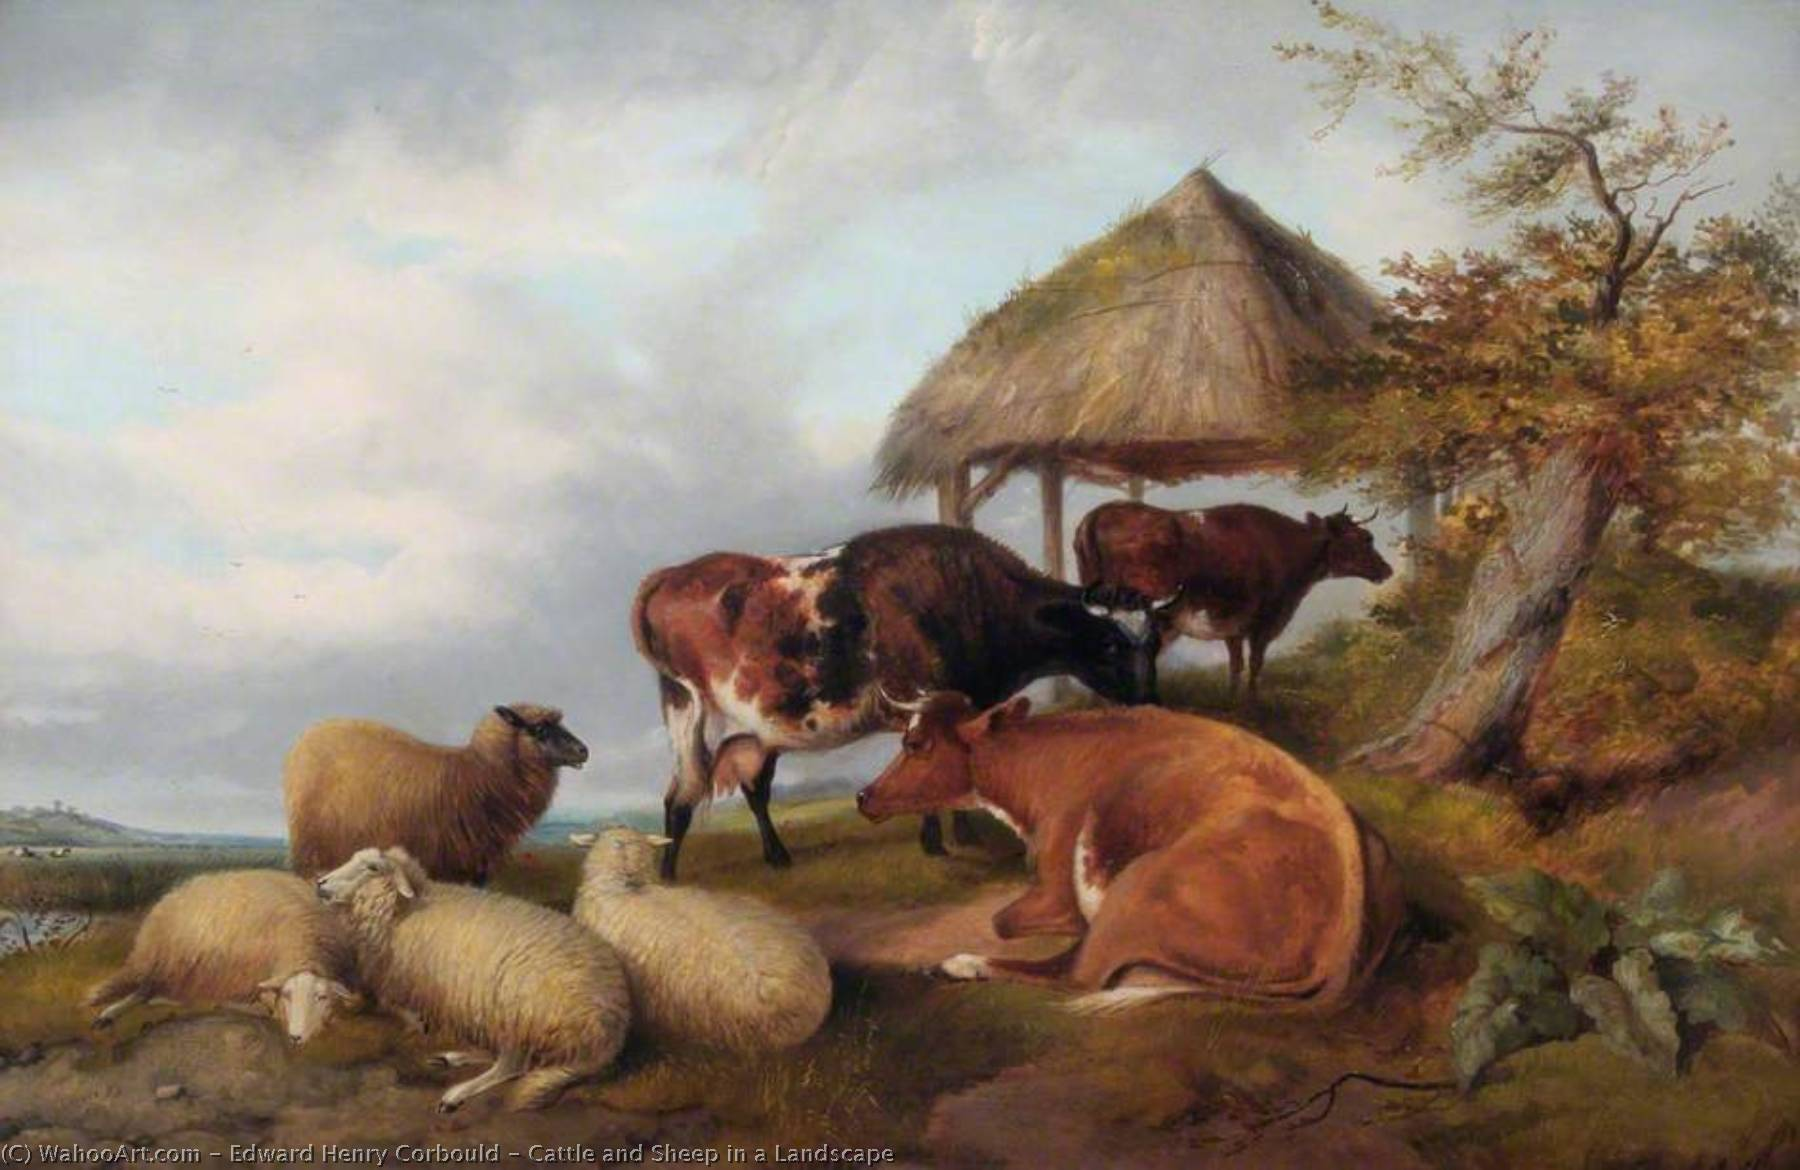 Buy Museum Art Reproductions | Cattle and Sheep in a Landscape by Edward Henry Corbould (1815-1905) | WahooArt.com